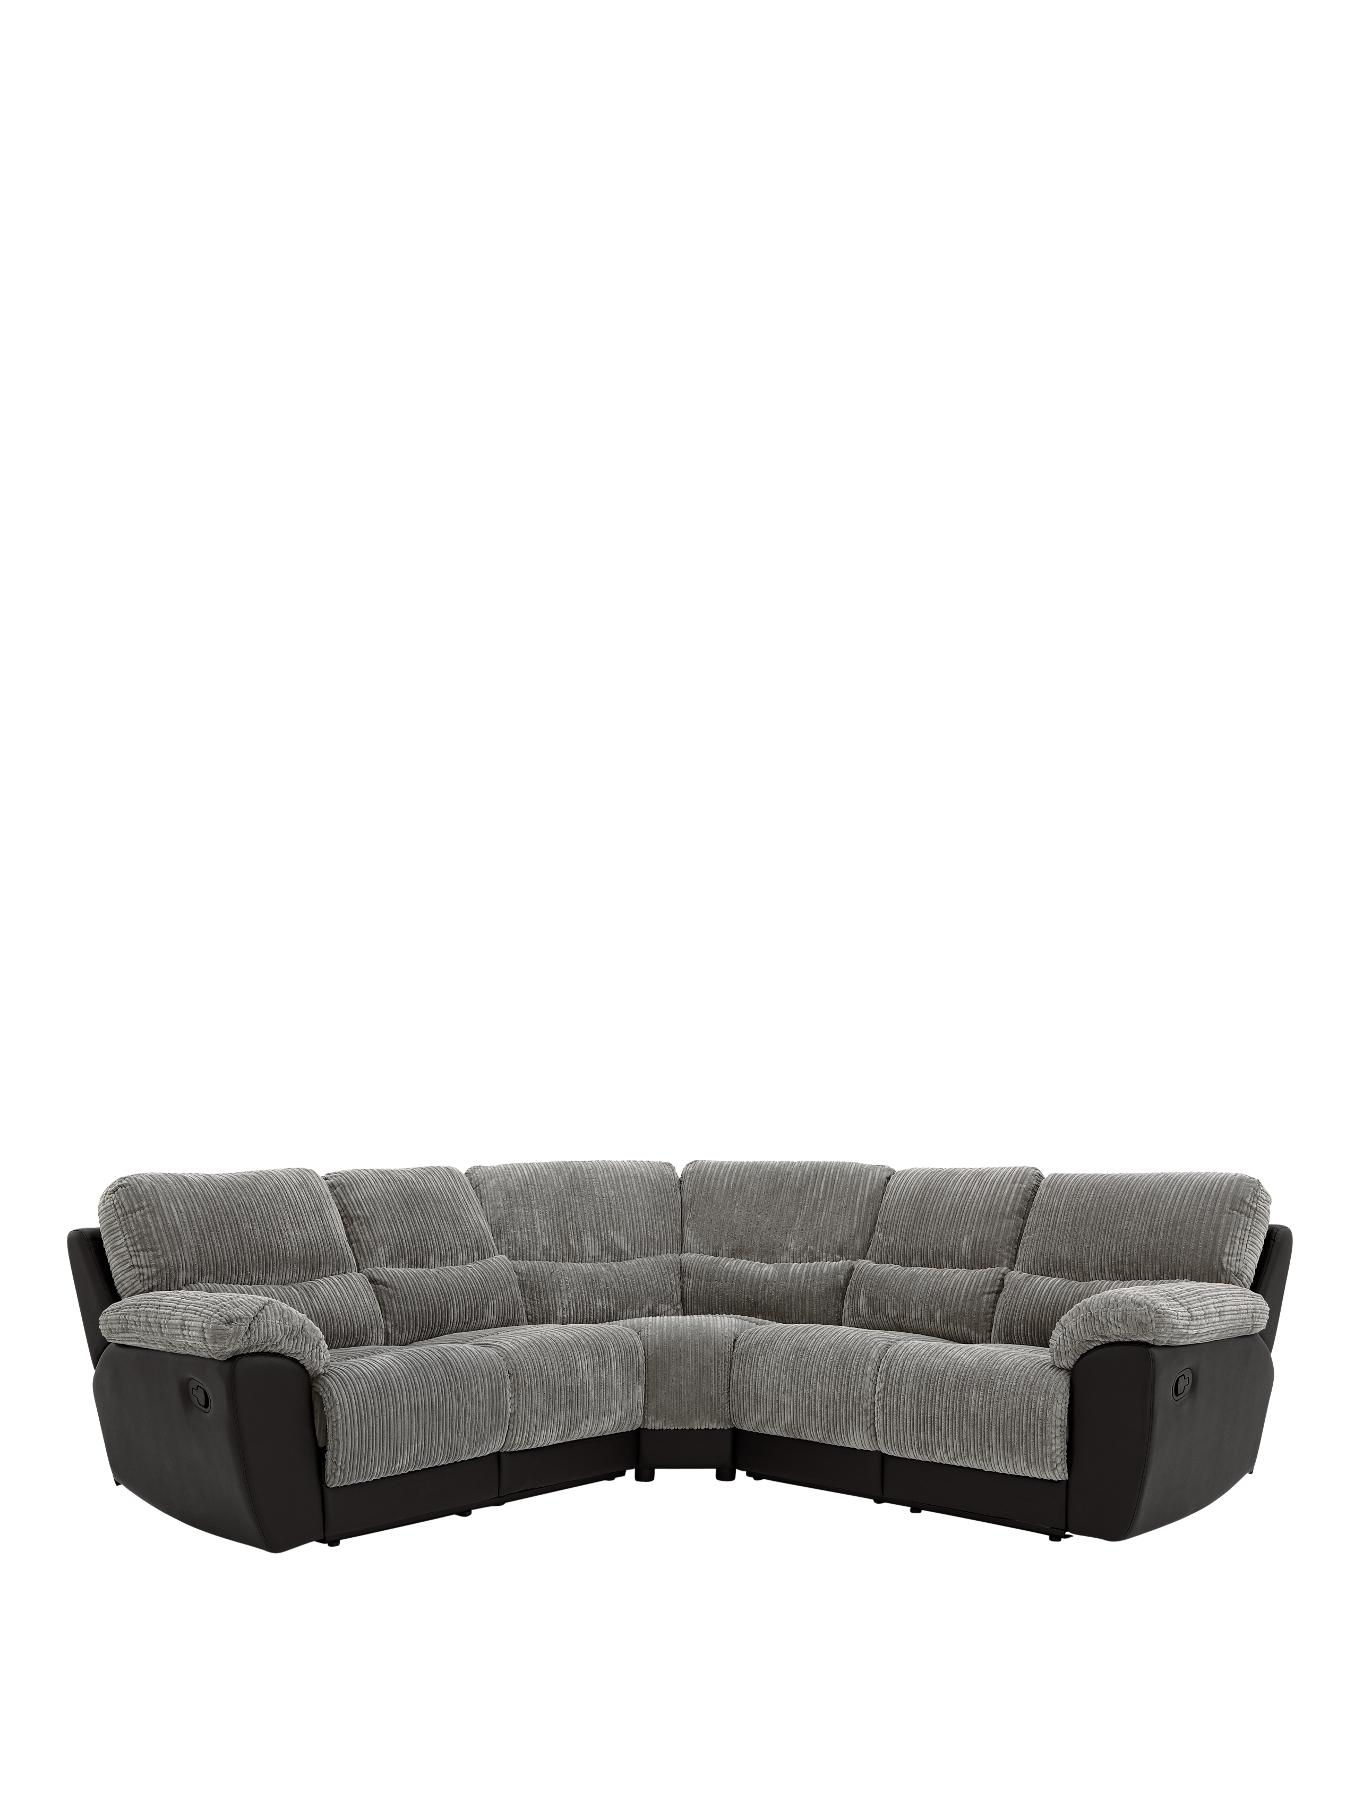 Sienna Fabric and Faux Leather Recliner Corner Group Sofa BlackChocolate